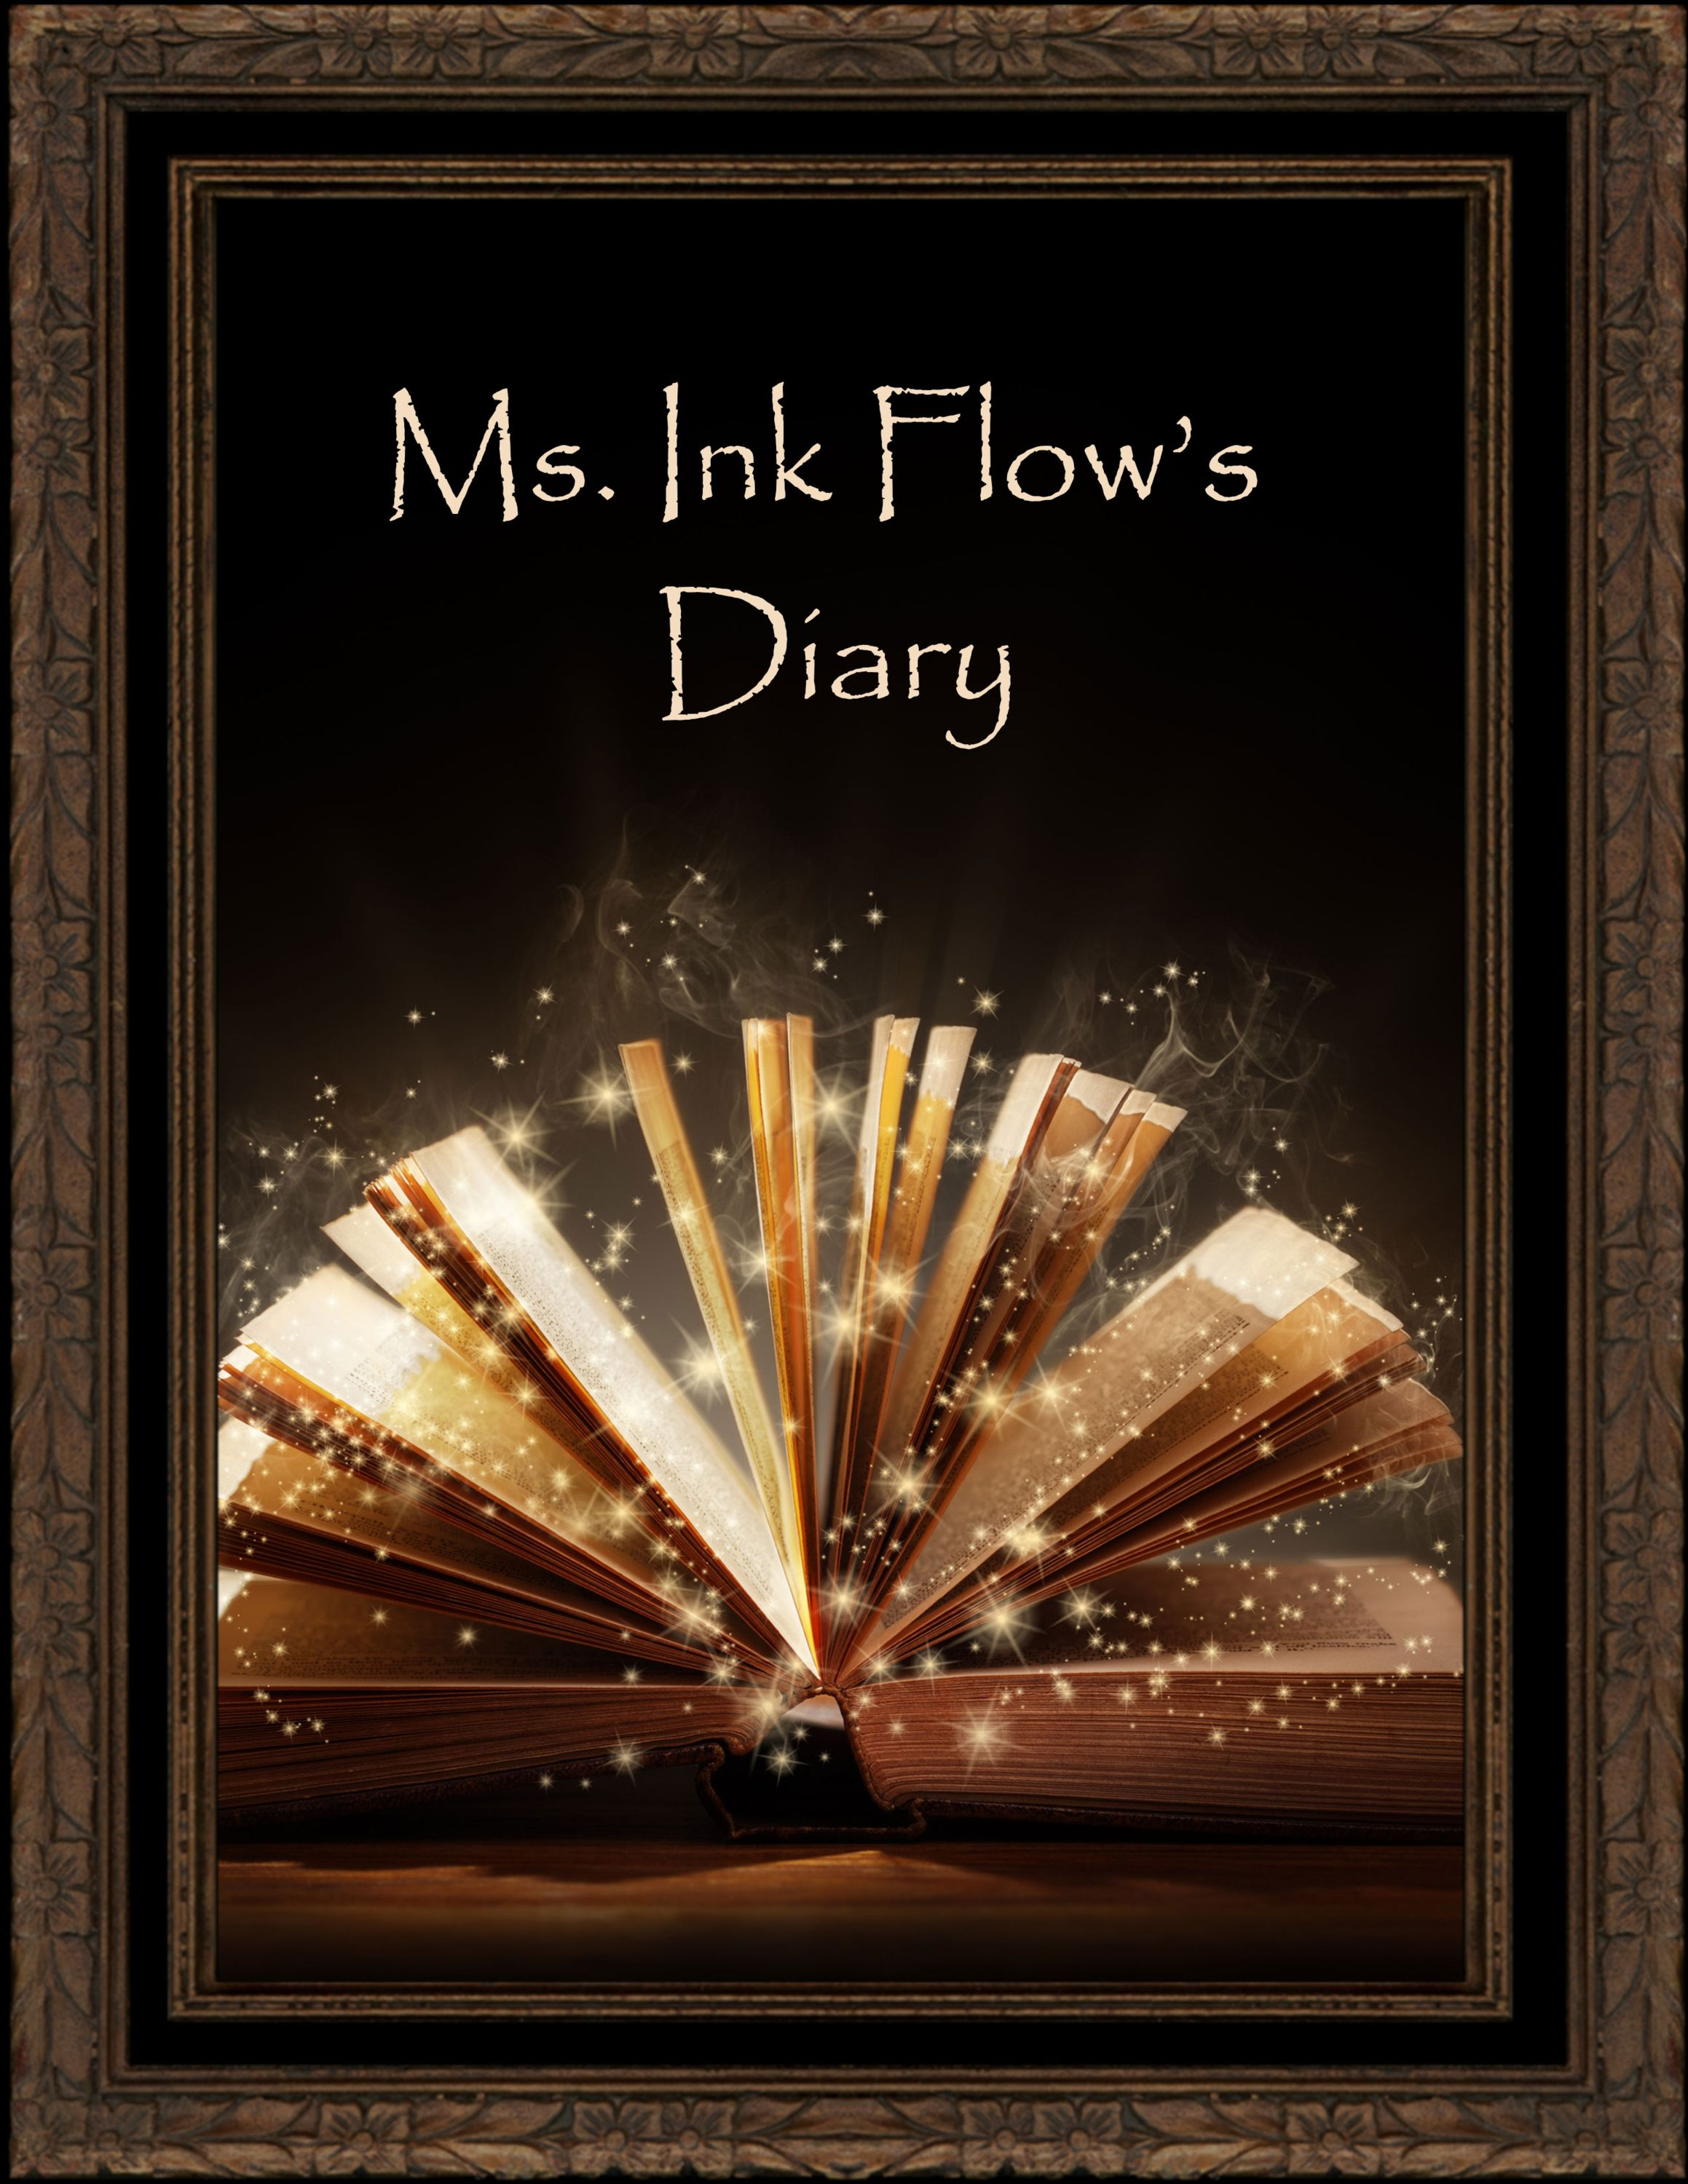 Ms. Ink Flow's Diary!